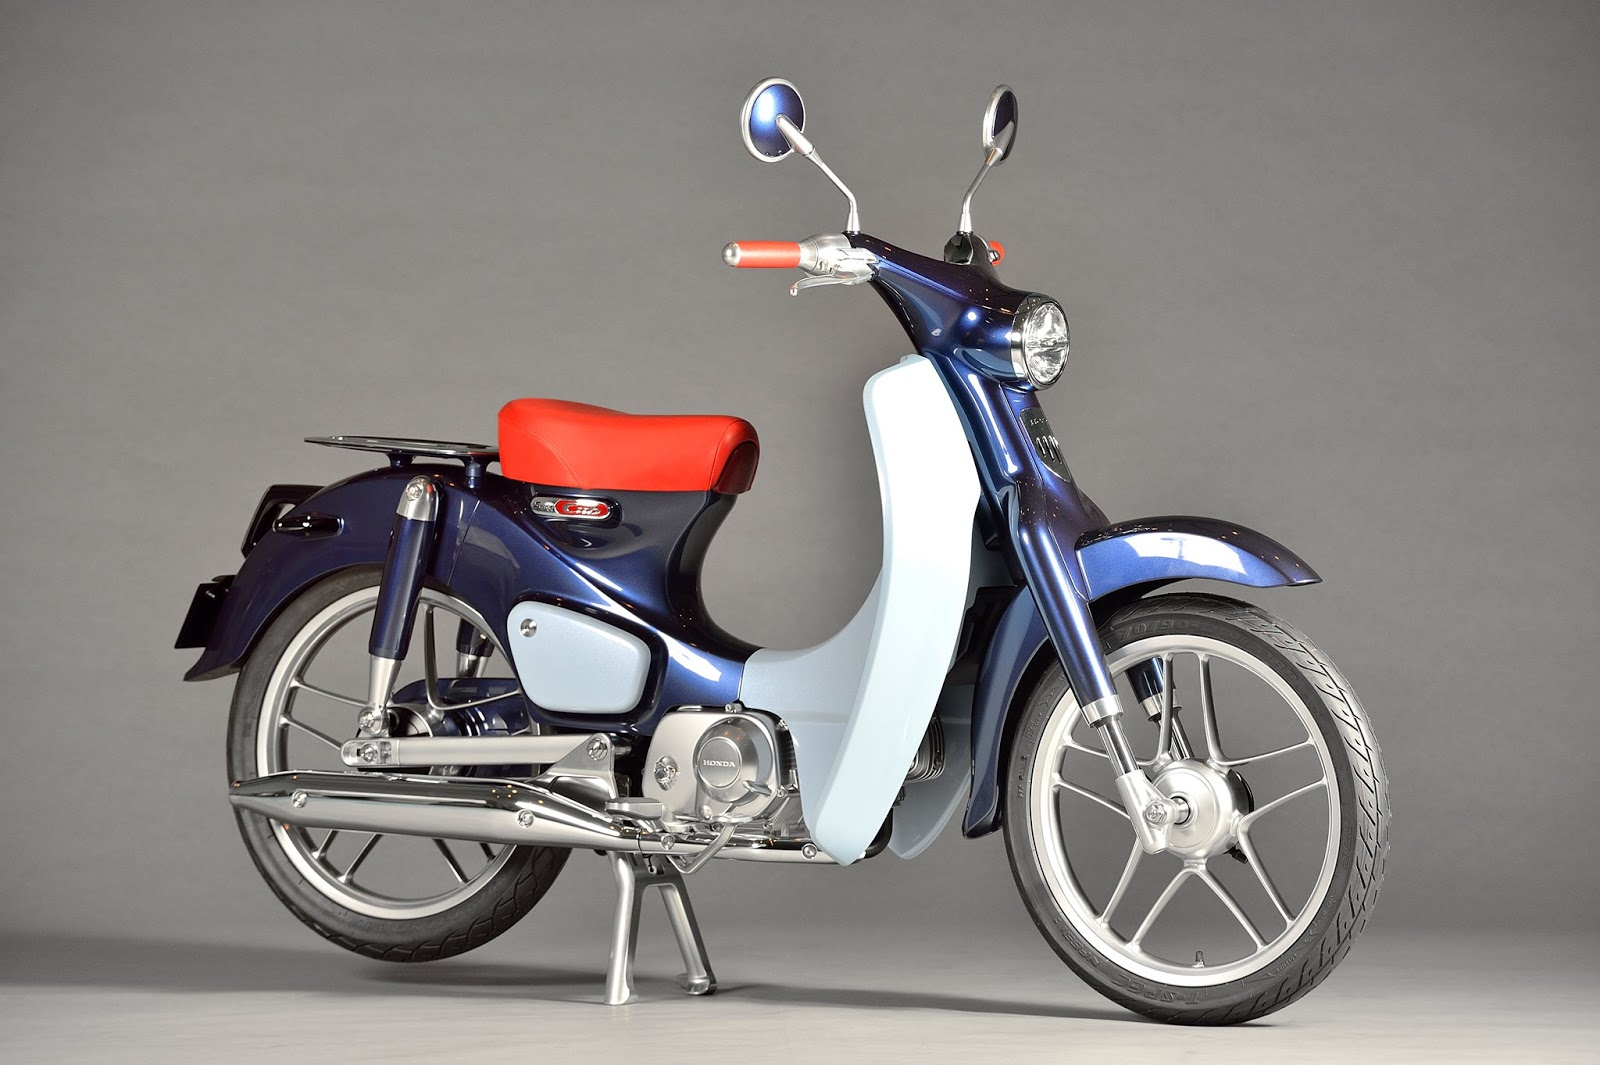 10 Things You May Not Know About Honda 1960s 50cc Bike Super Cub Concept 2015 07